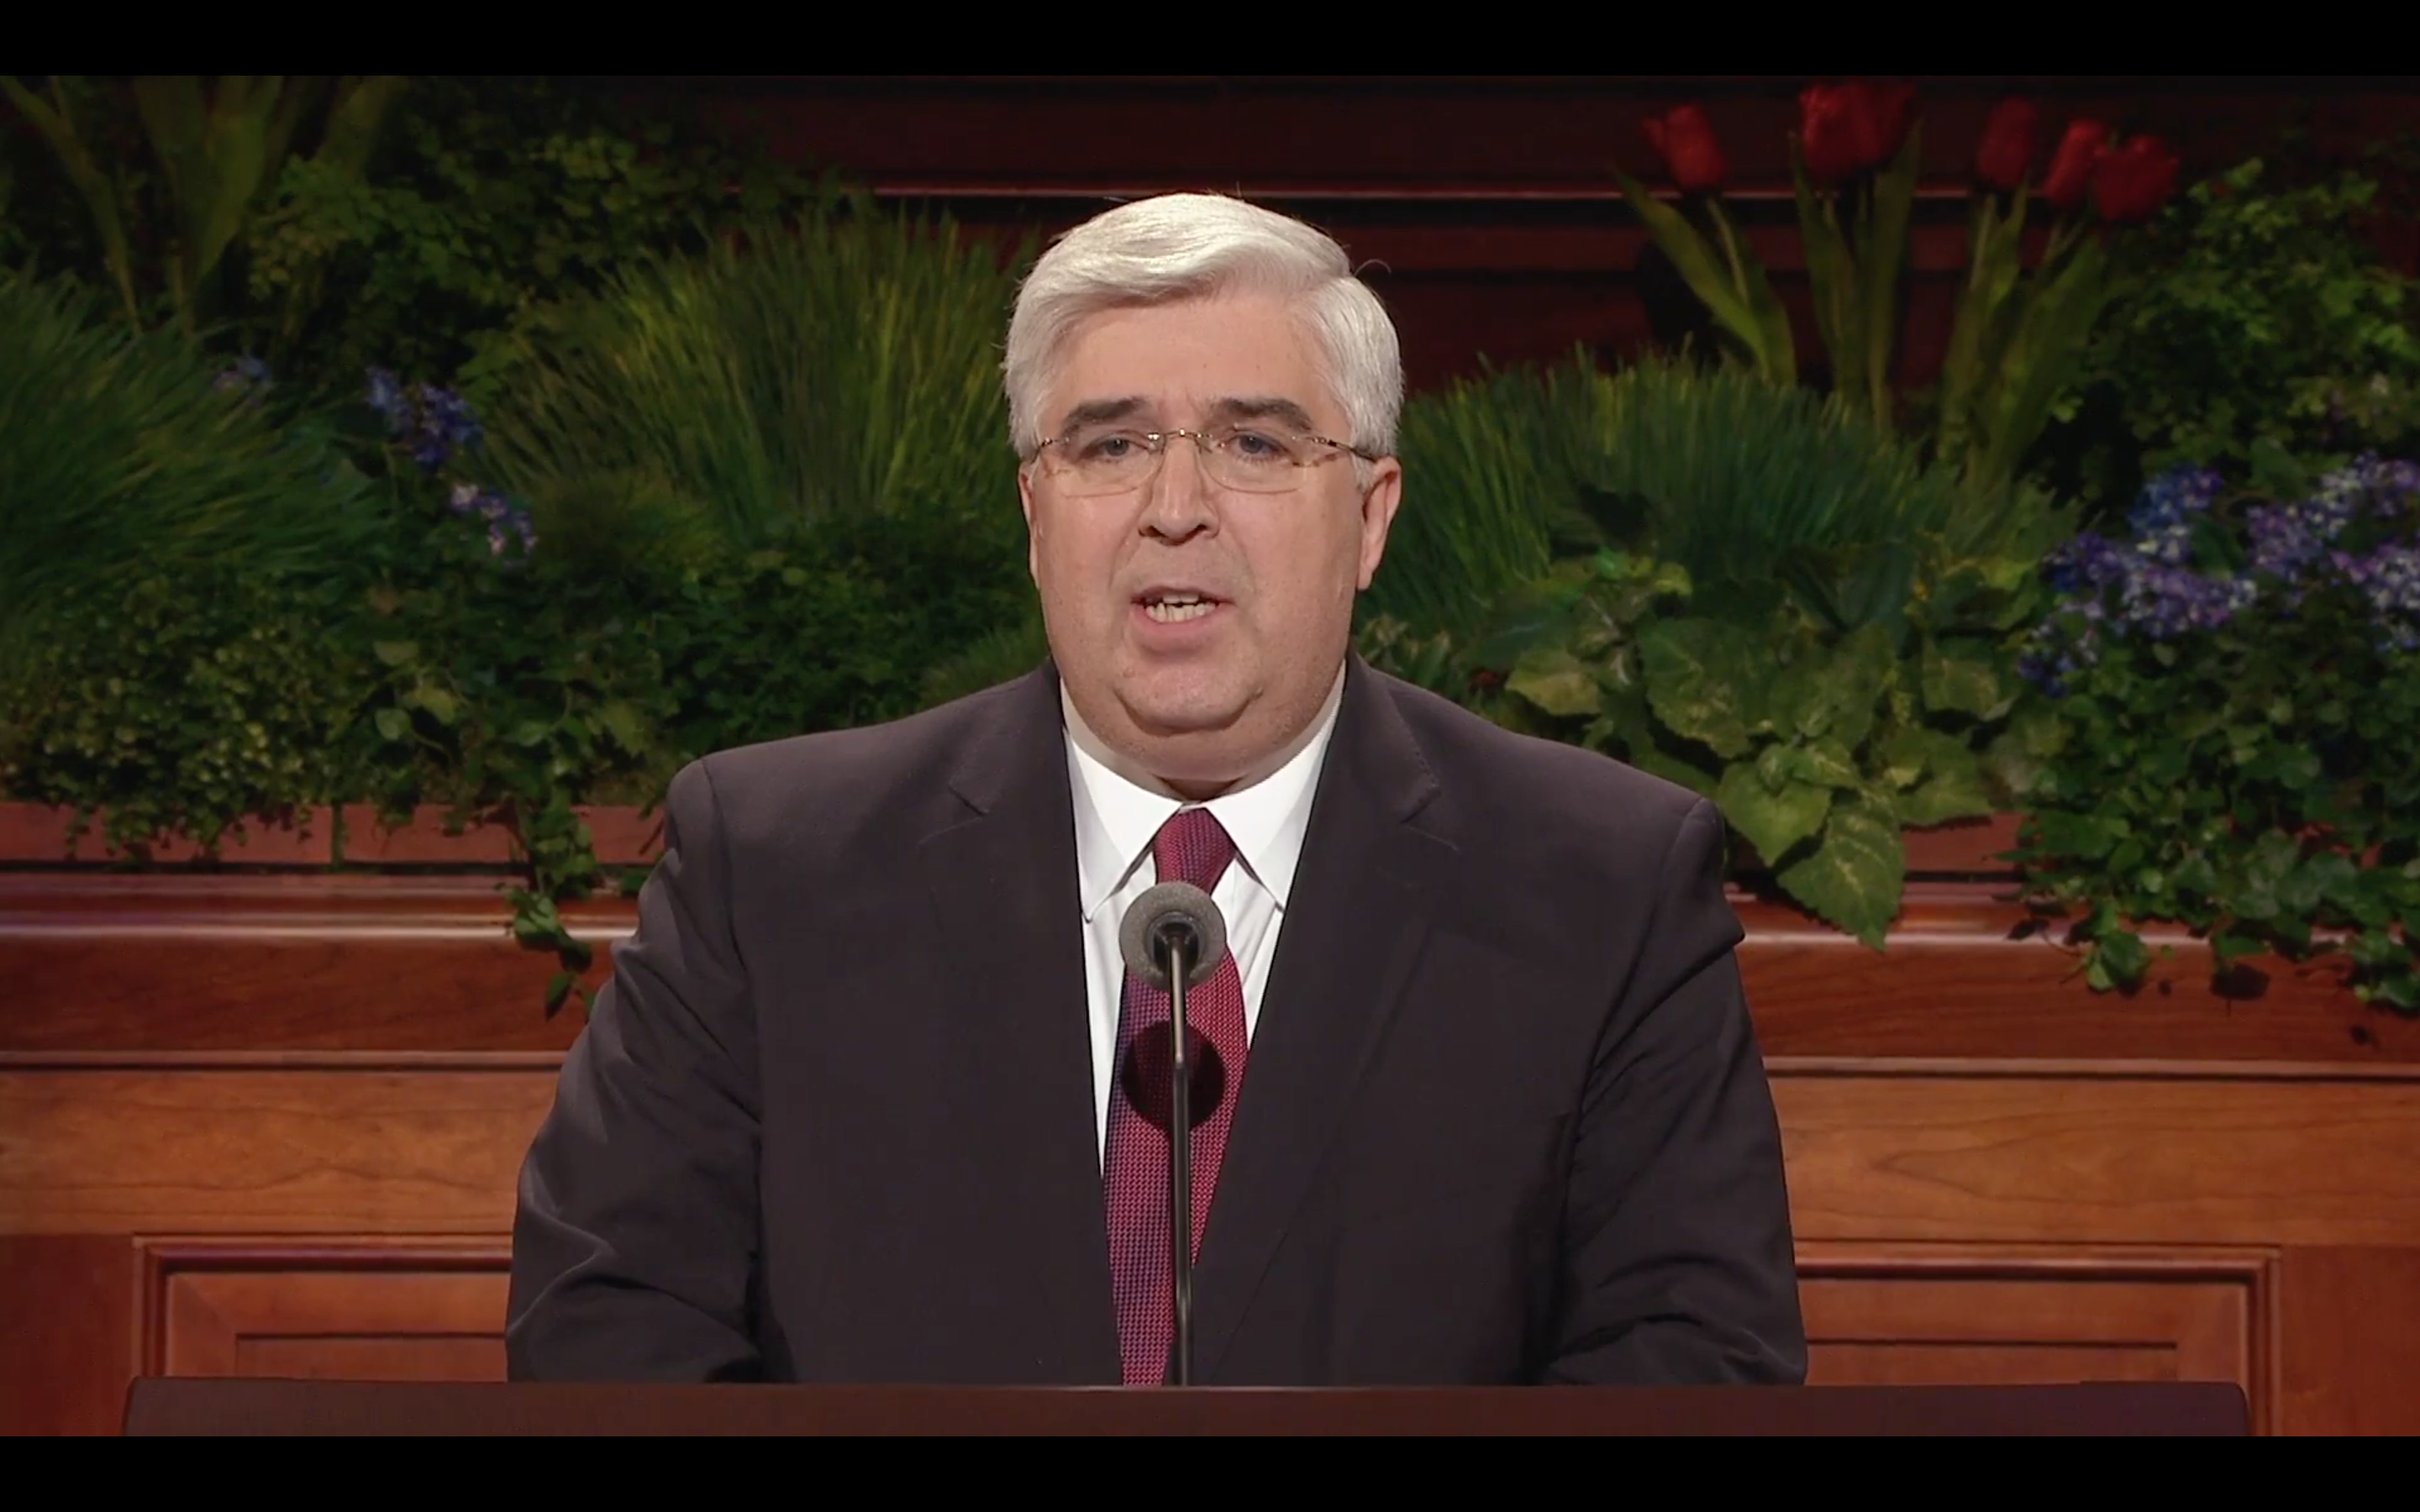 Elder Jose A. Teixera speaks at the Sunday Morning Session of the 185th Annual General Conference. (LDS.org)